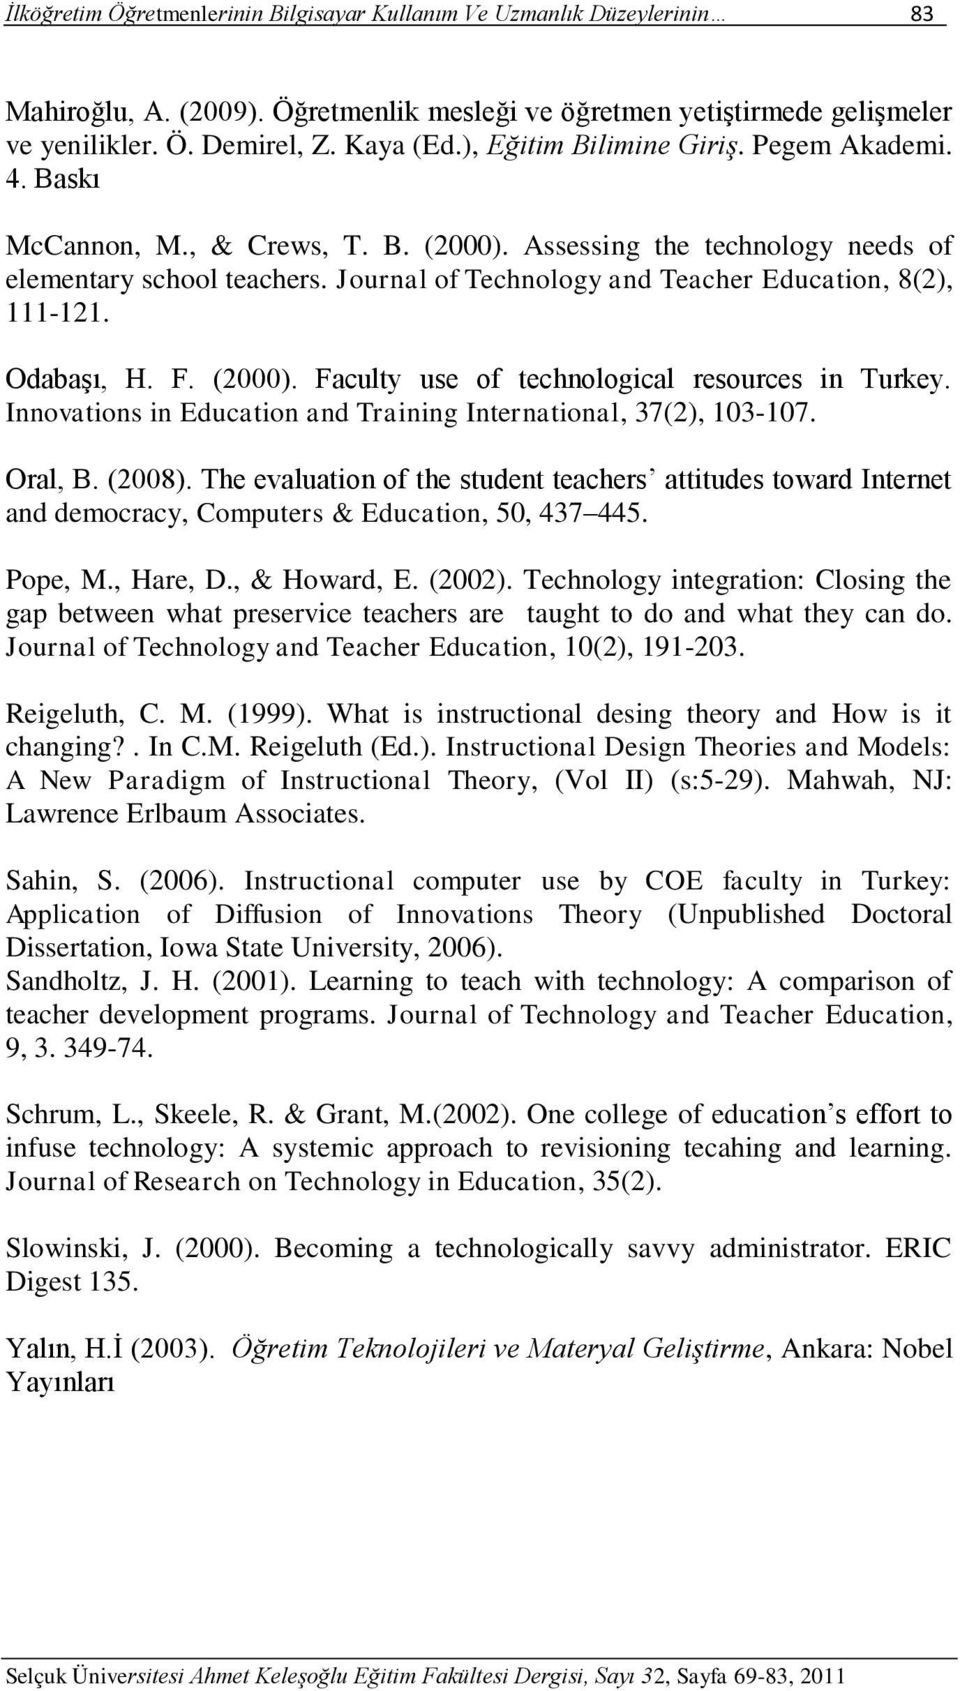 Journal of Technology and Teacher Education, 8(2), 111-121. OdabaĢı, H. F. (2000). Faculty use of technological resources in Turkey.